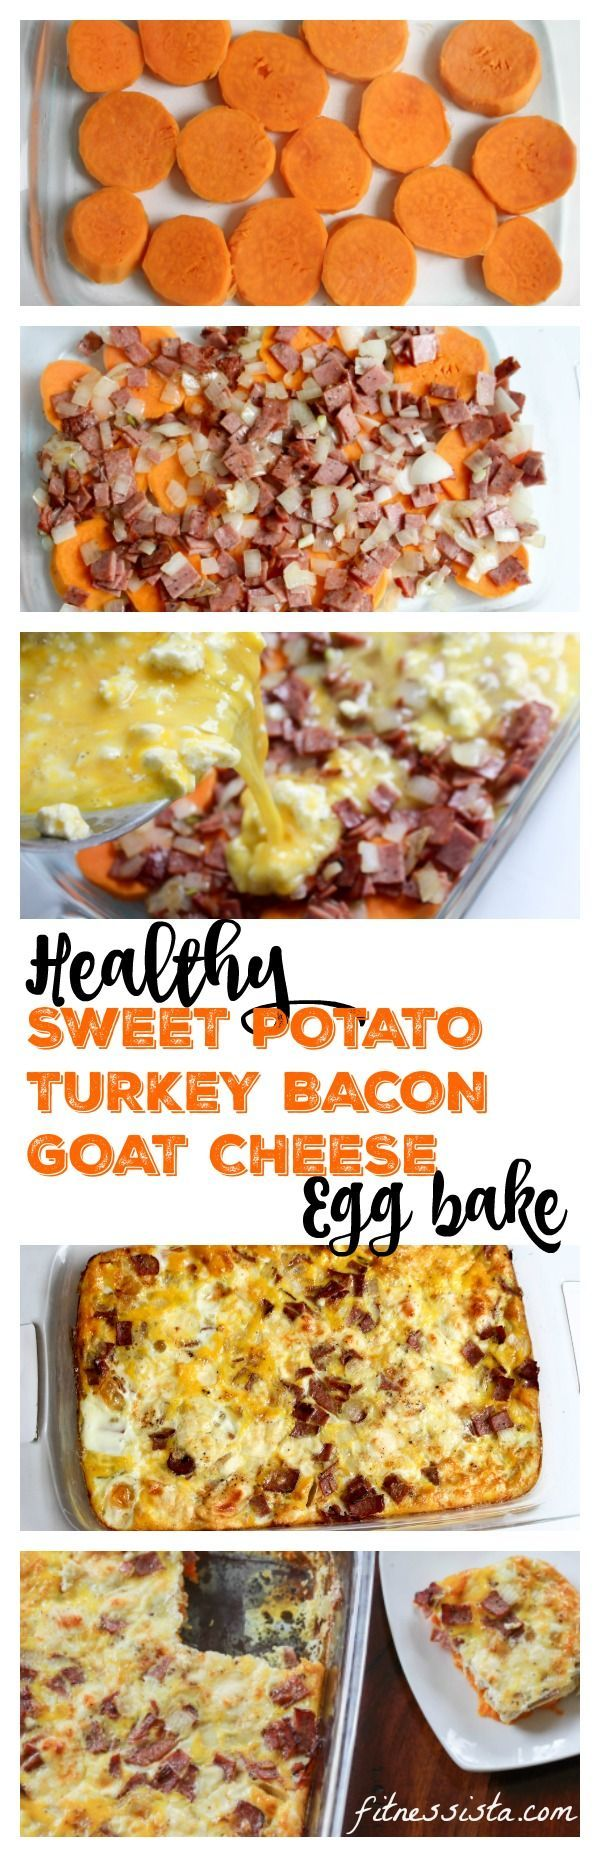 Sweet potato, goat cheese and turkey bacon egg bake